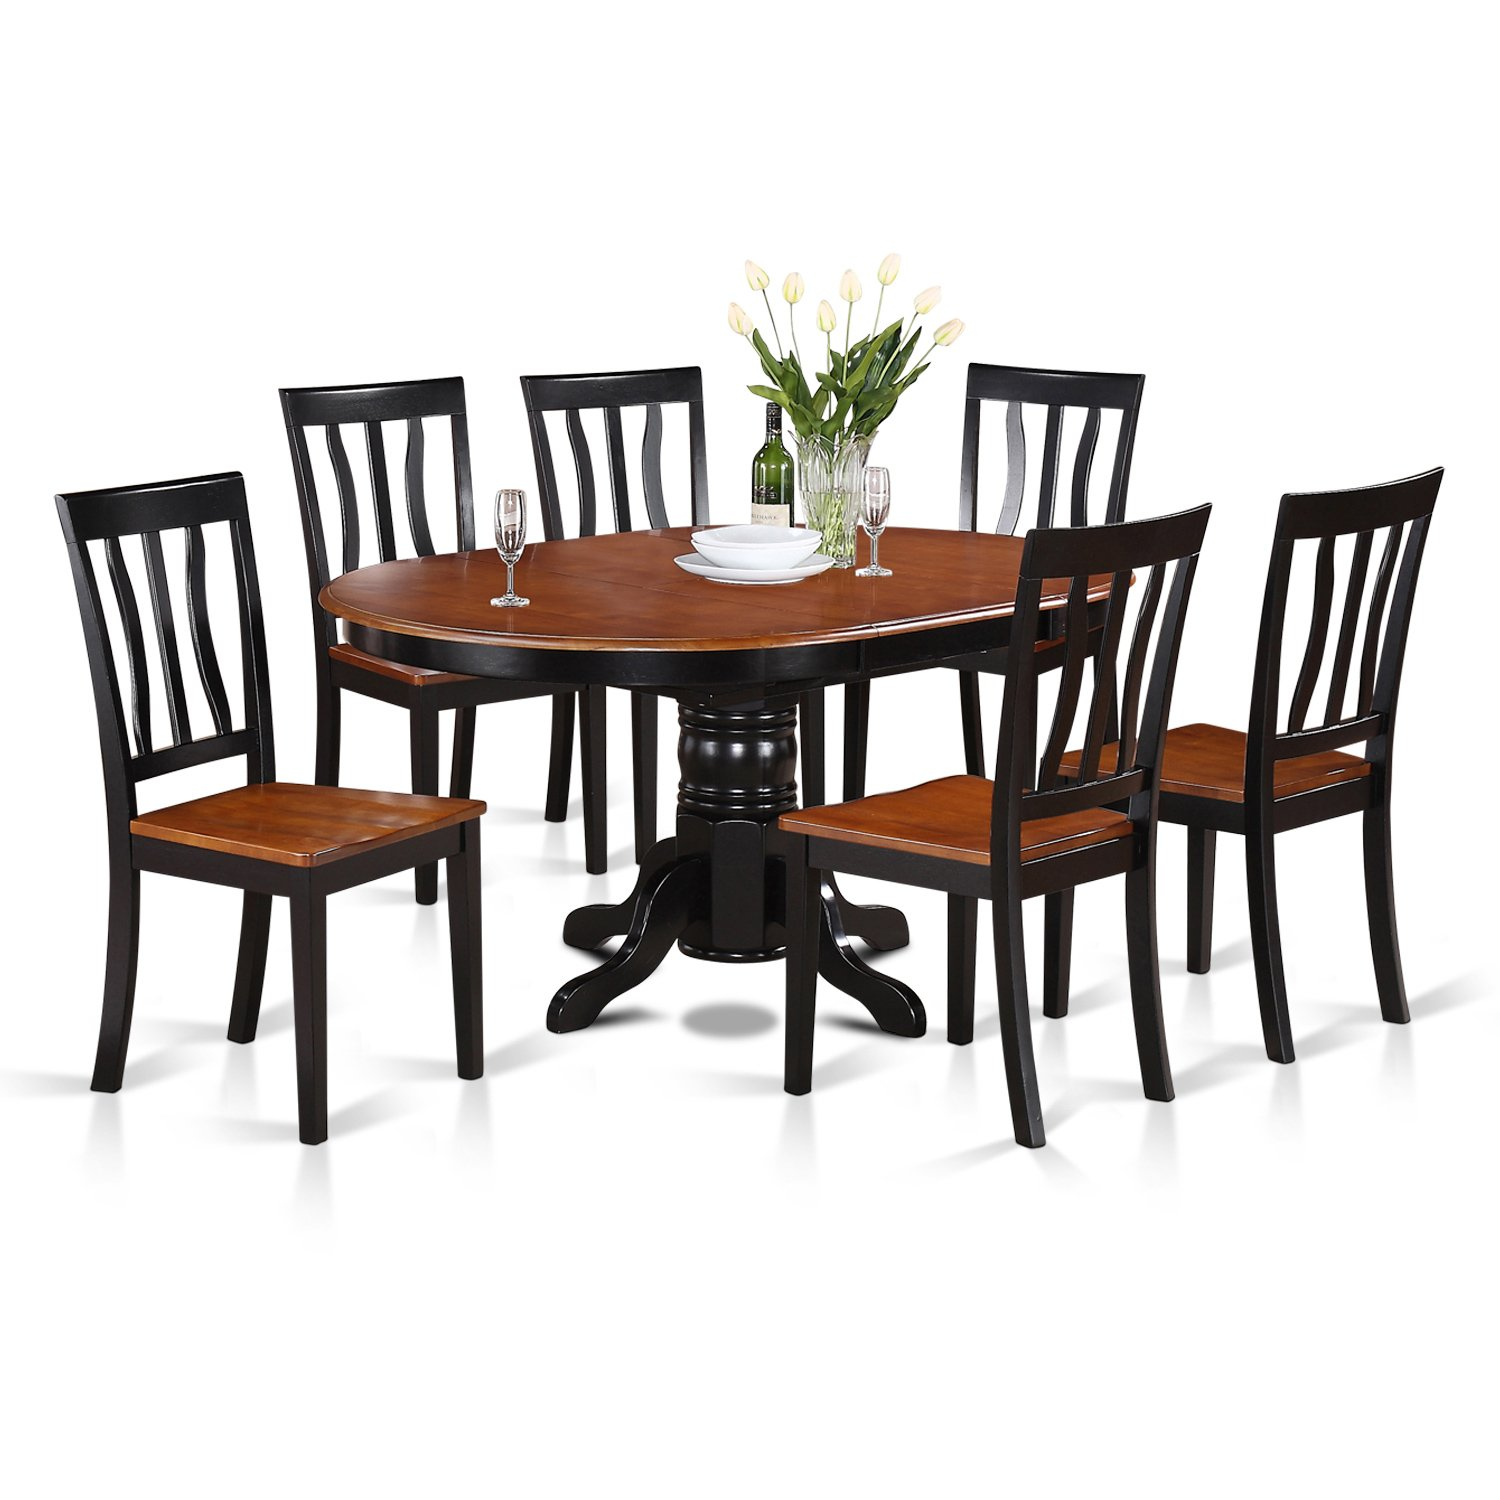 Amazon com east west furniture avat7 blk w 7 piece dining table set table chair sets